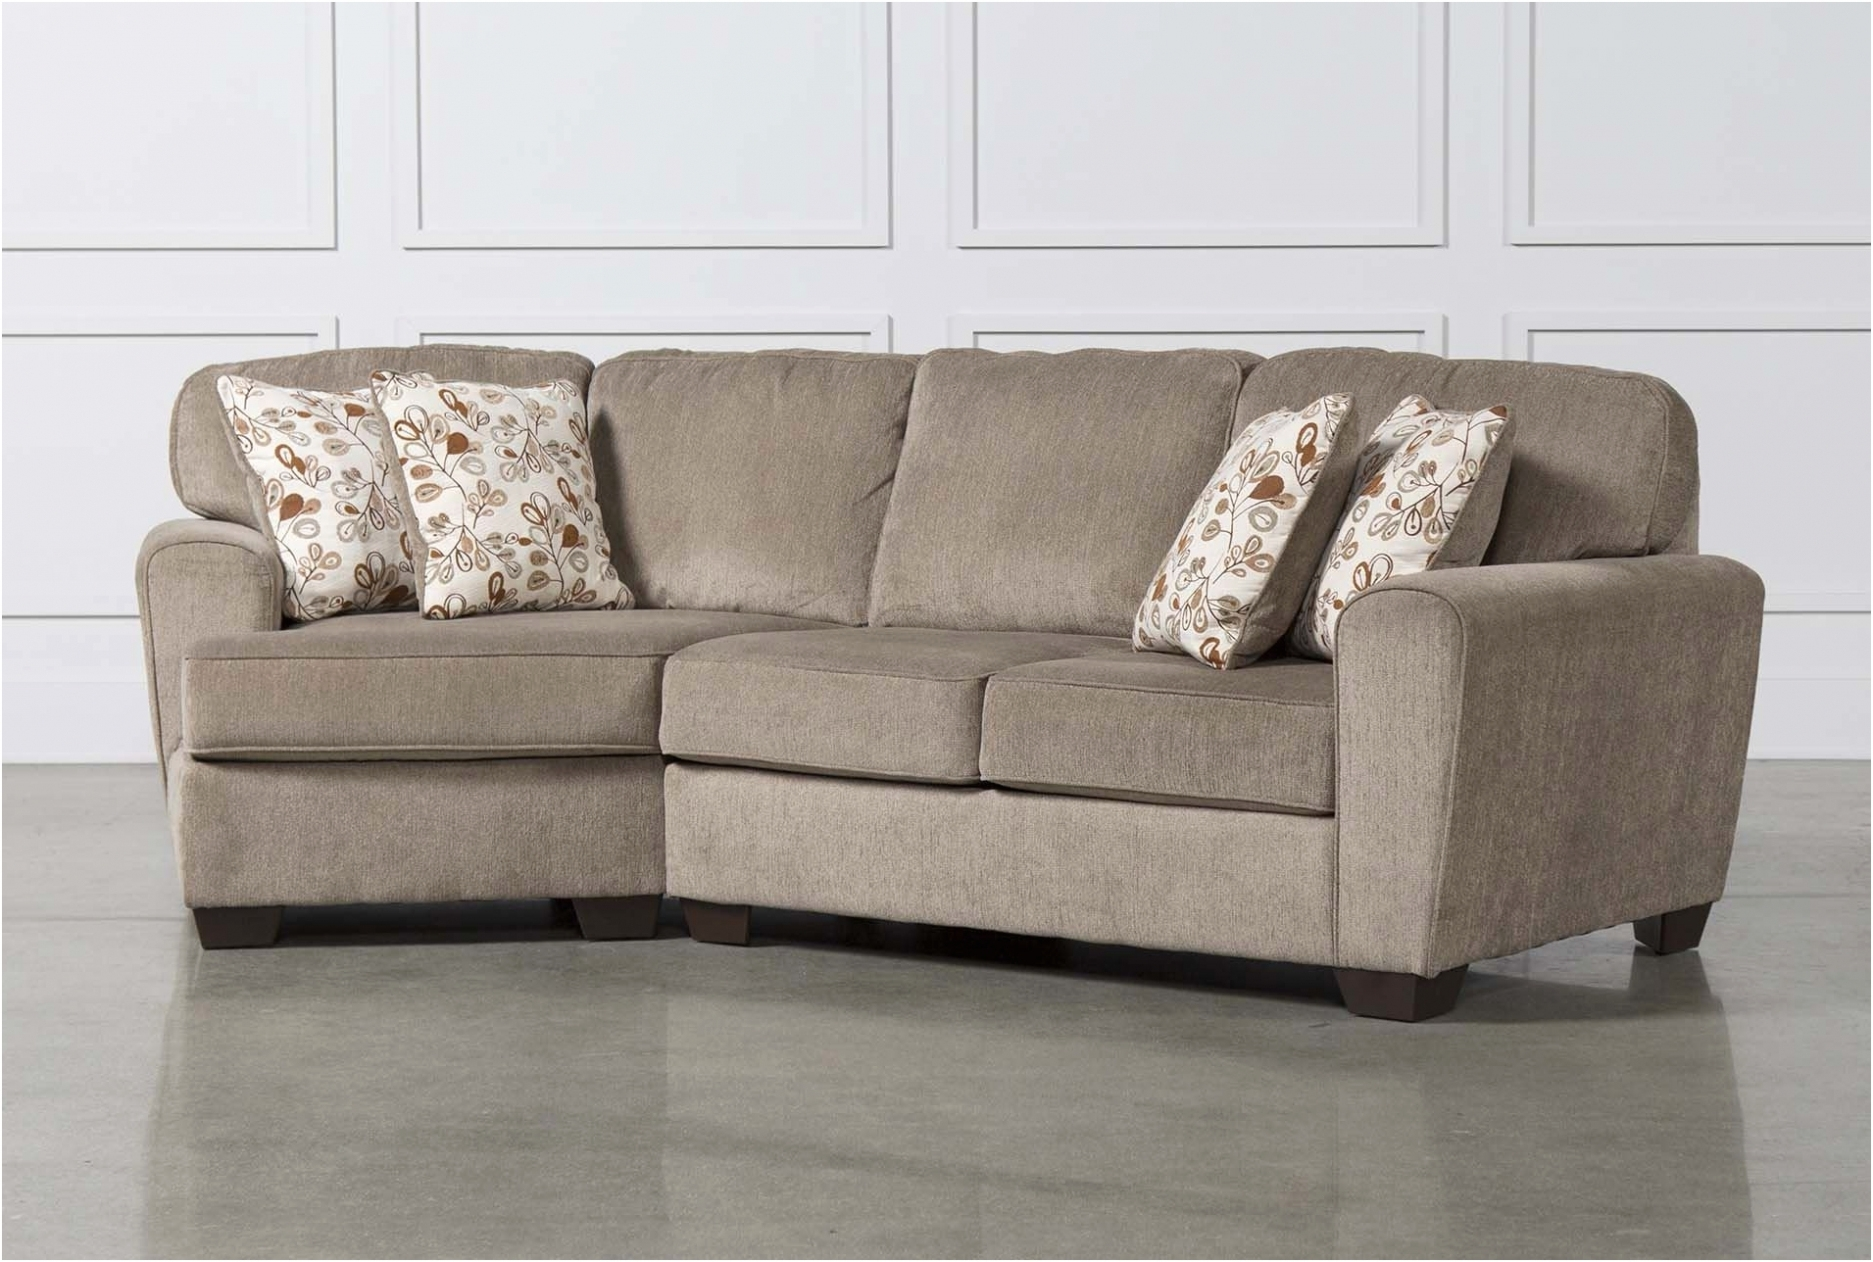 Living Spaces Sectional Sofa Bed - Sofa Design Ideas inside Aquarius Light Grey 2 Piece Sectionals With Laf Chaise (Image 18 of 30)